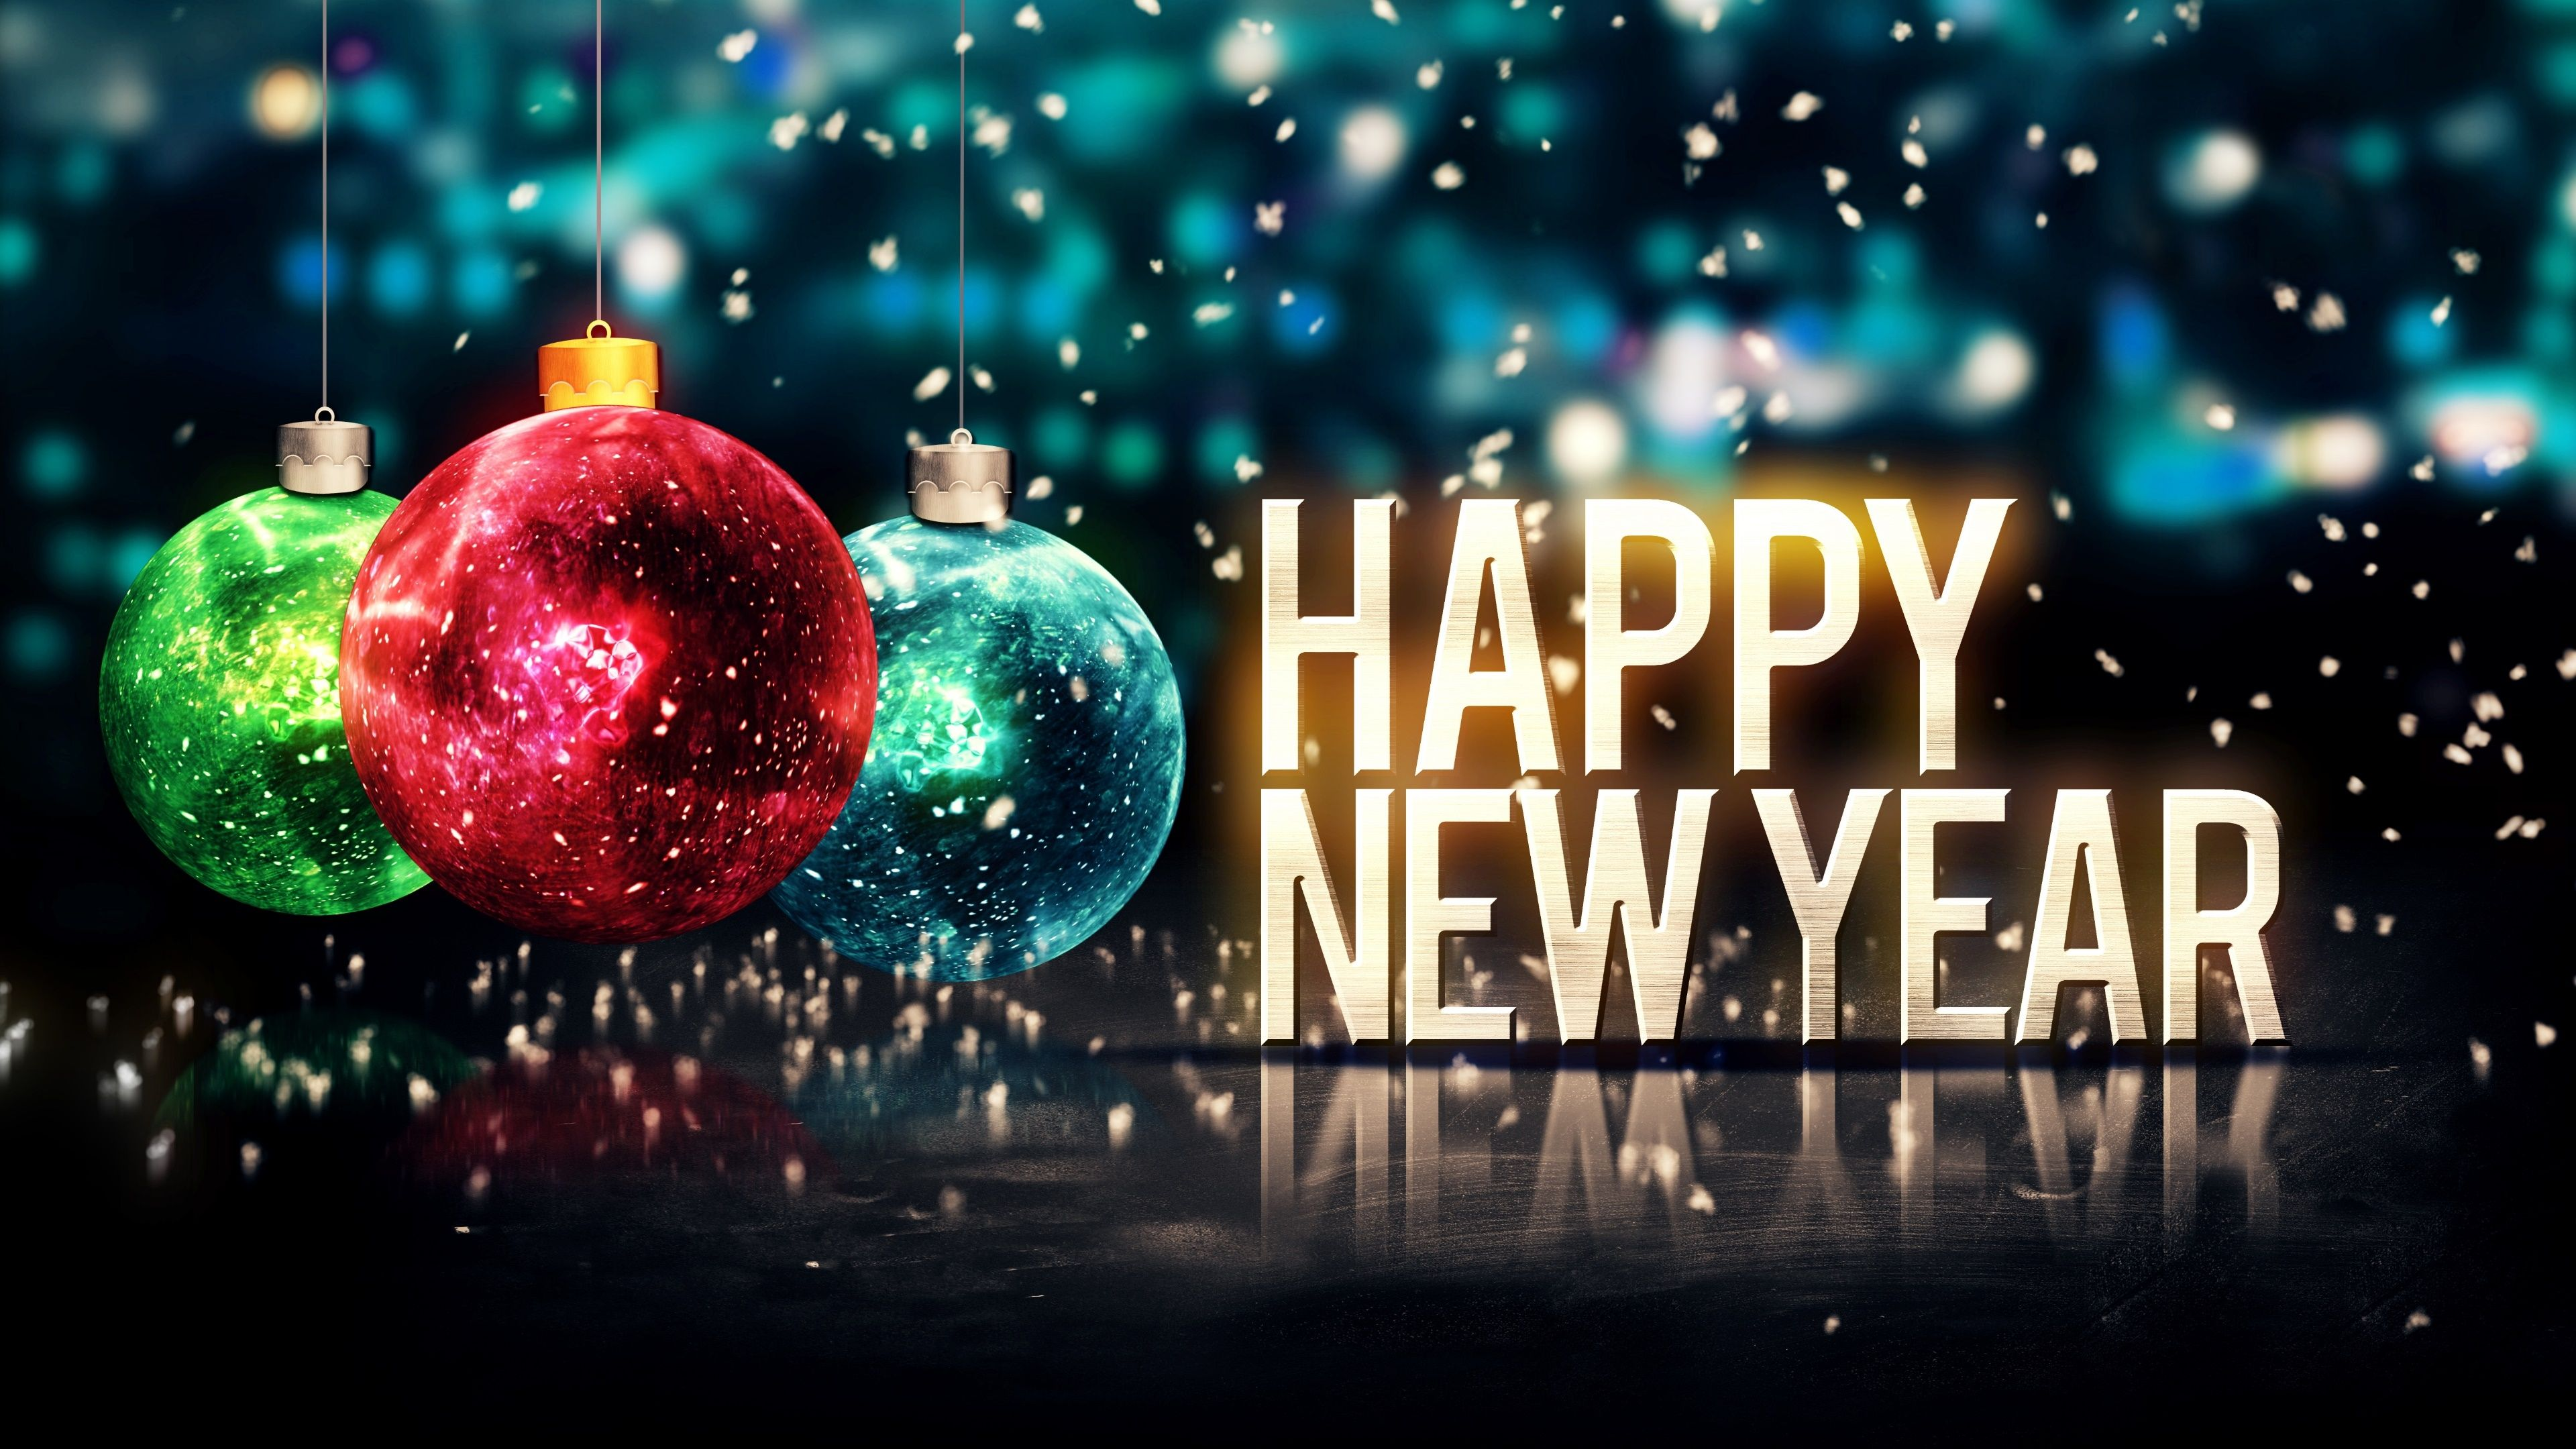 Top 10 4k hd happy new year 2016 wallpapers axeetech new top 10 4k hd happy new year 2016 wallpapers axeetech kristyandbryce Choice Image